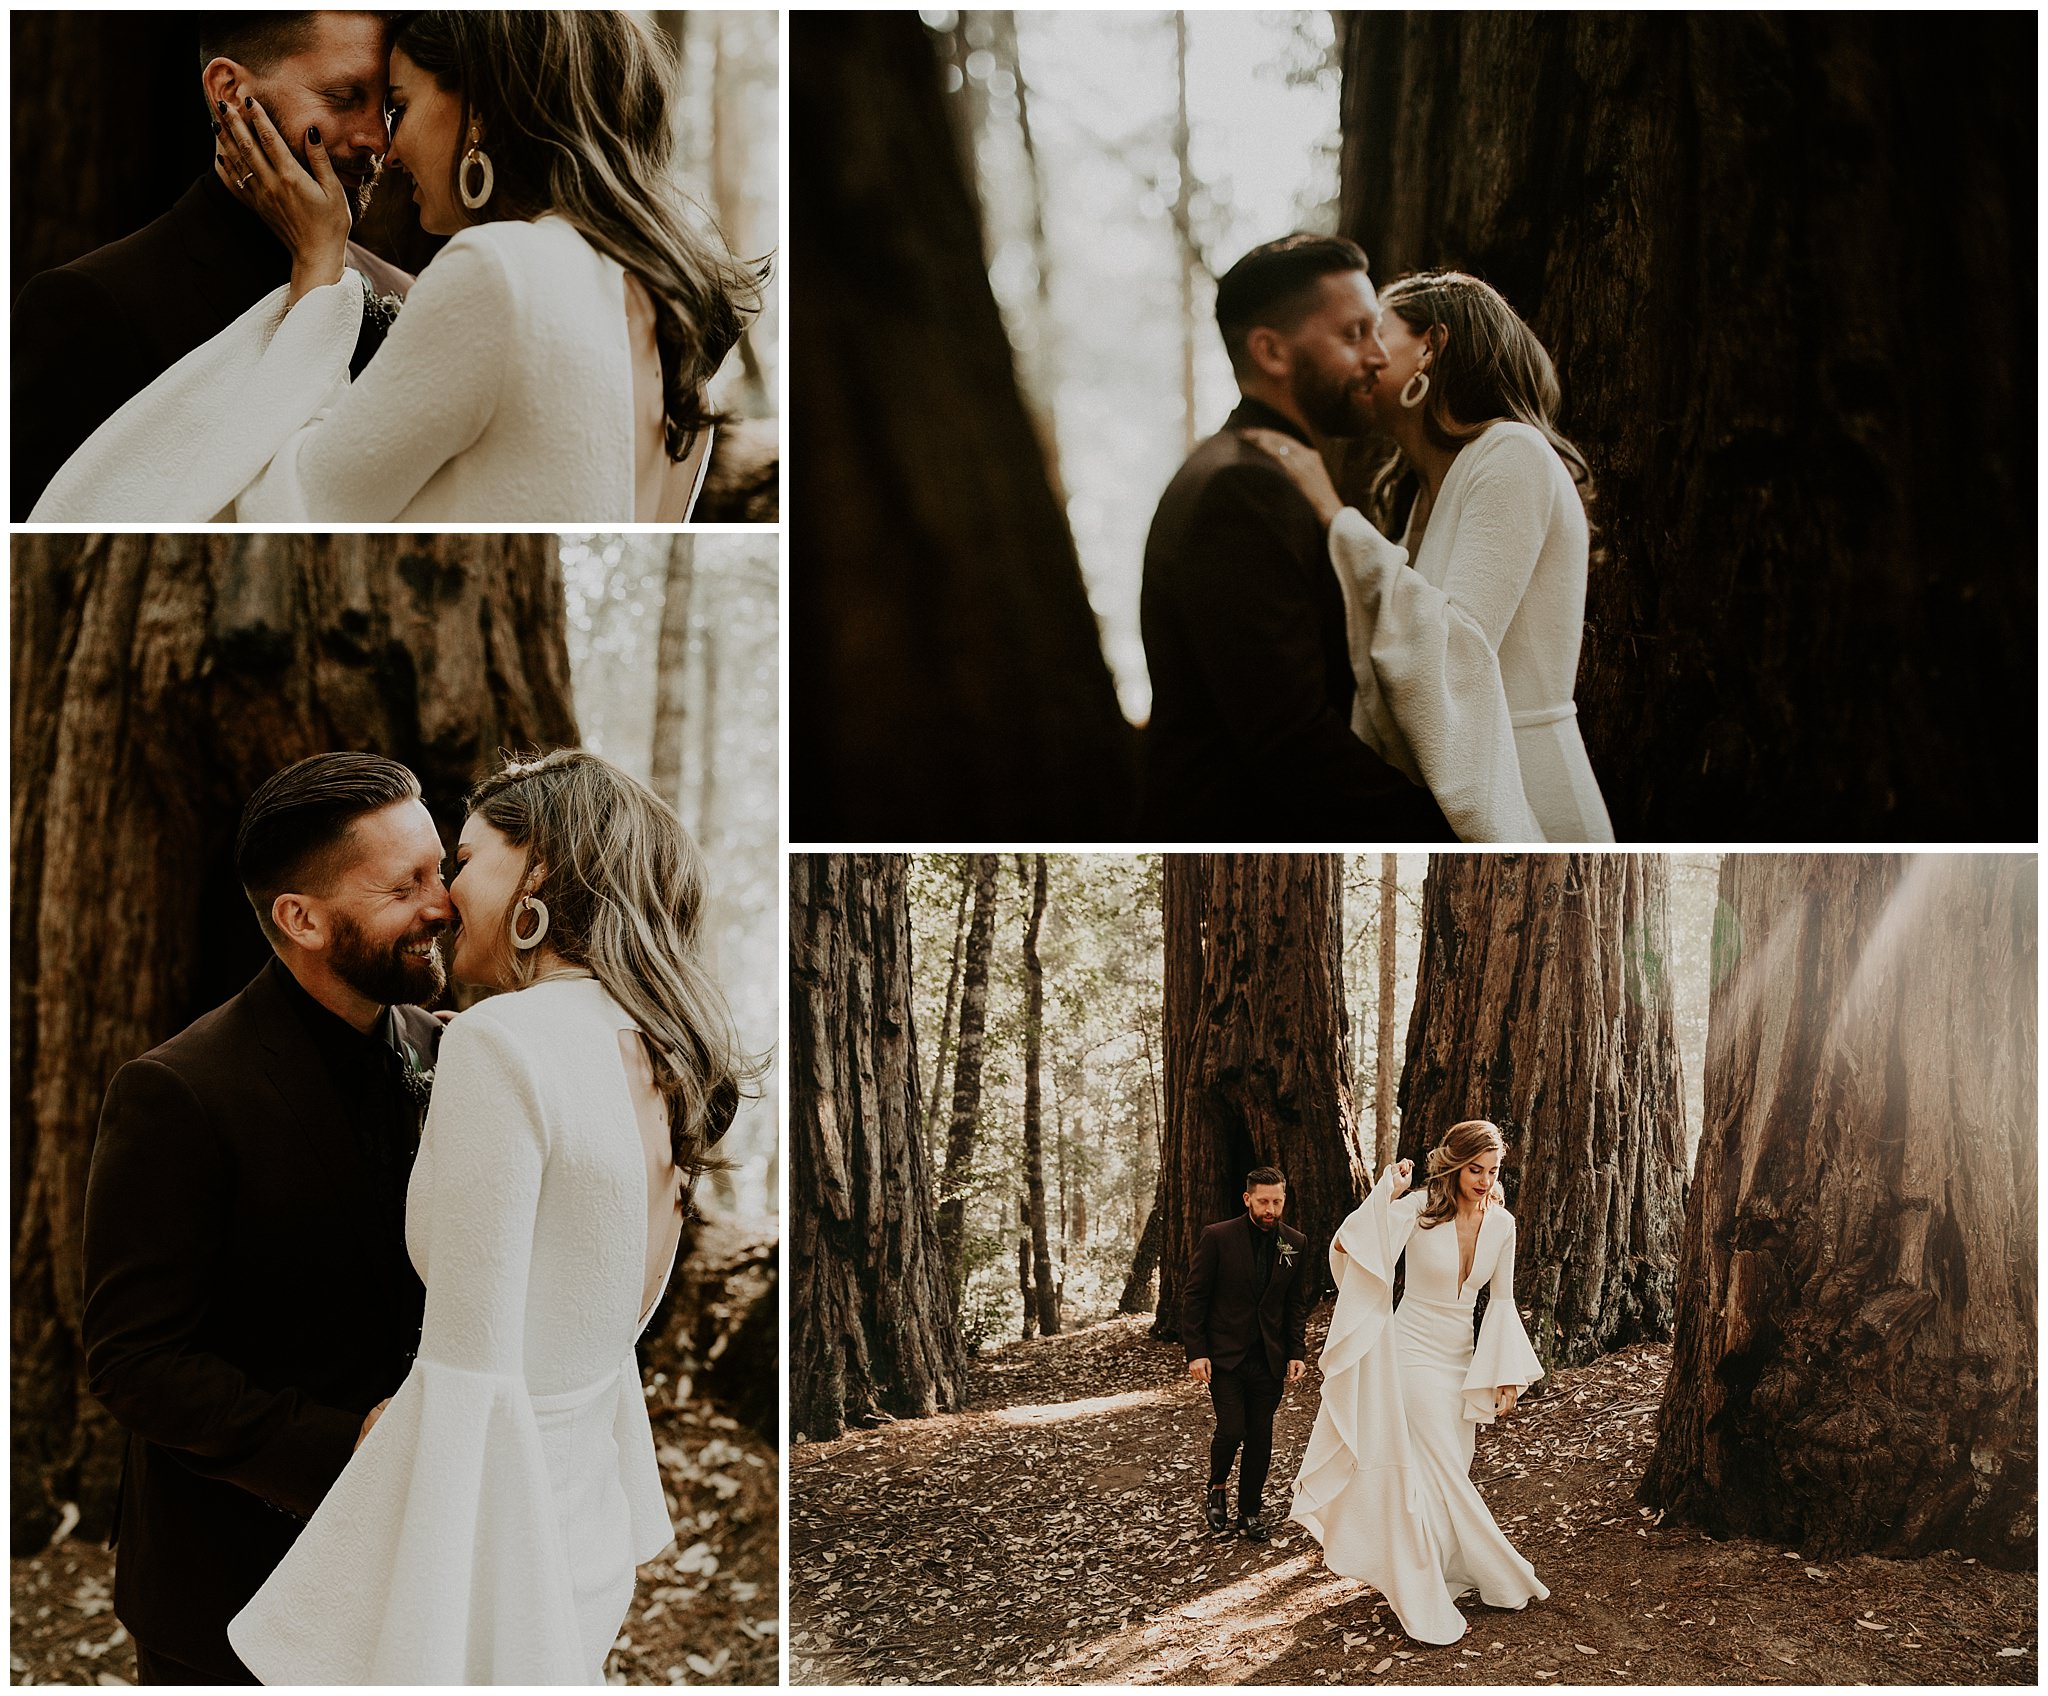 redwood-forest-wedding5.jpg